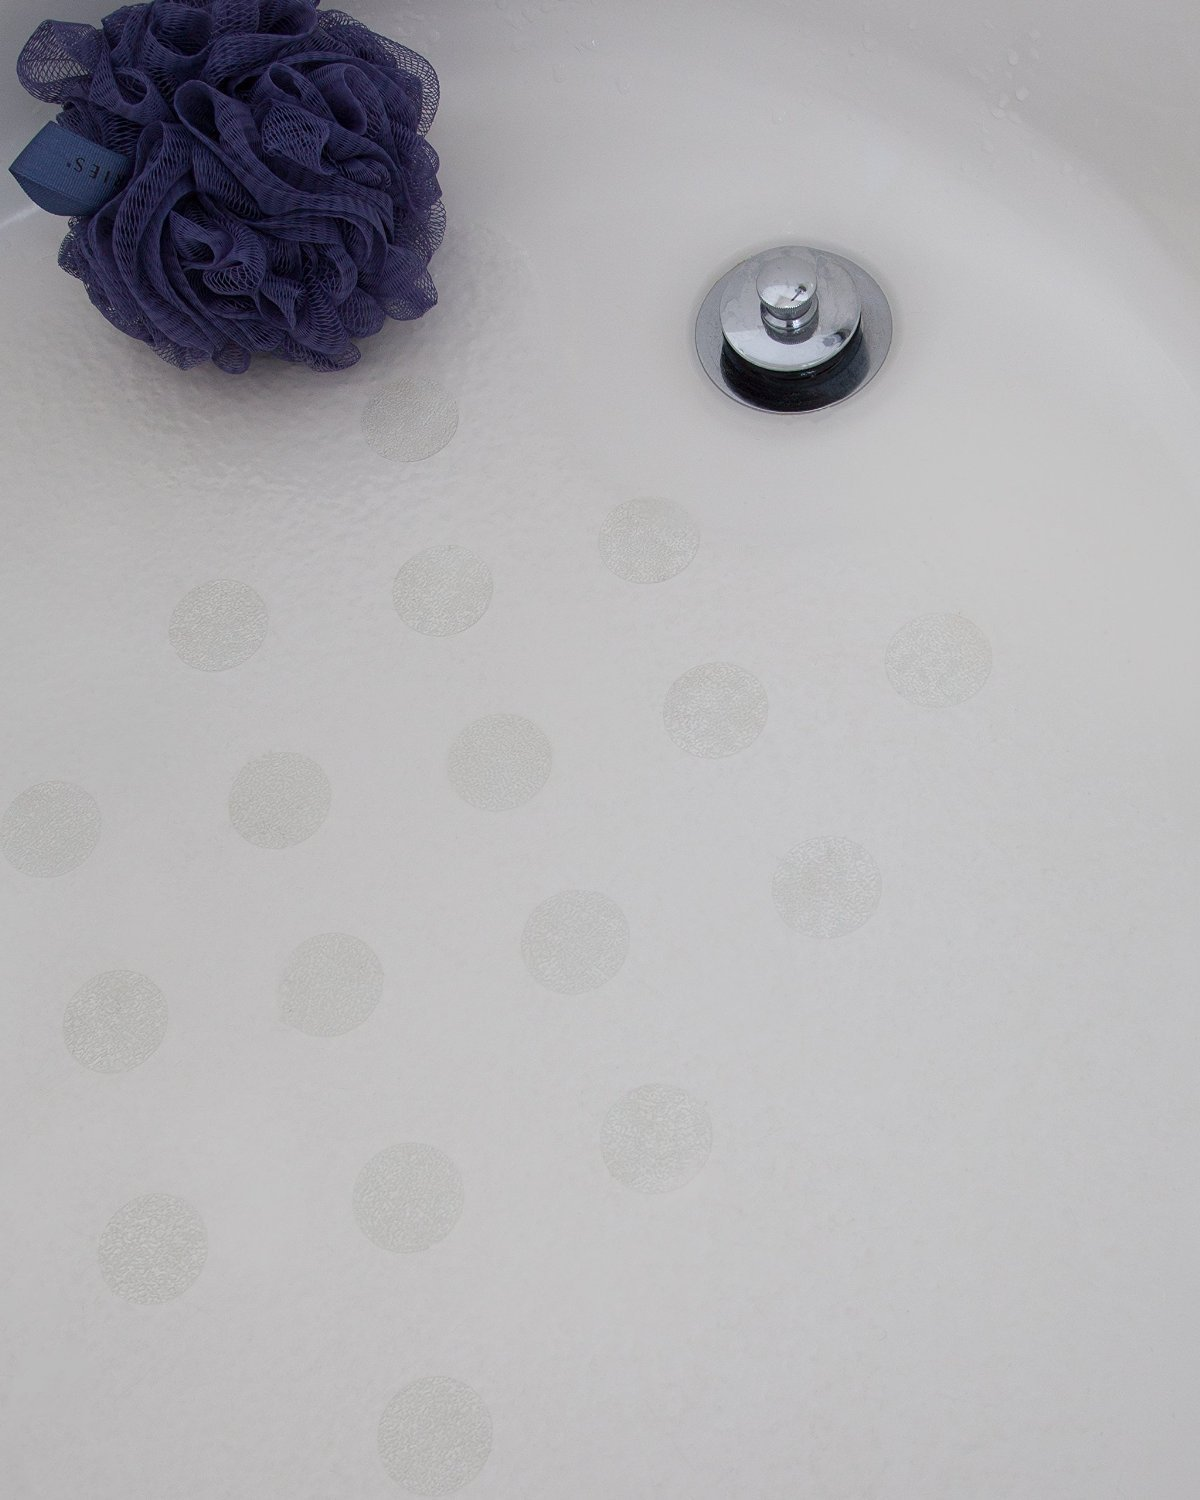 Non Slip Discs Anti Slip Stickers for Tubs and Showers (1.5